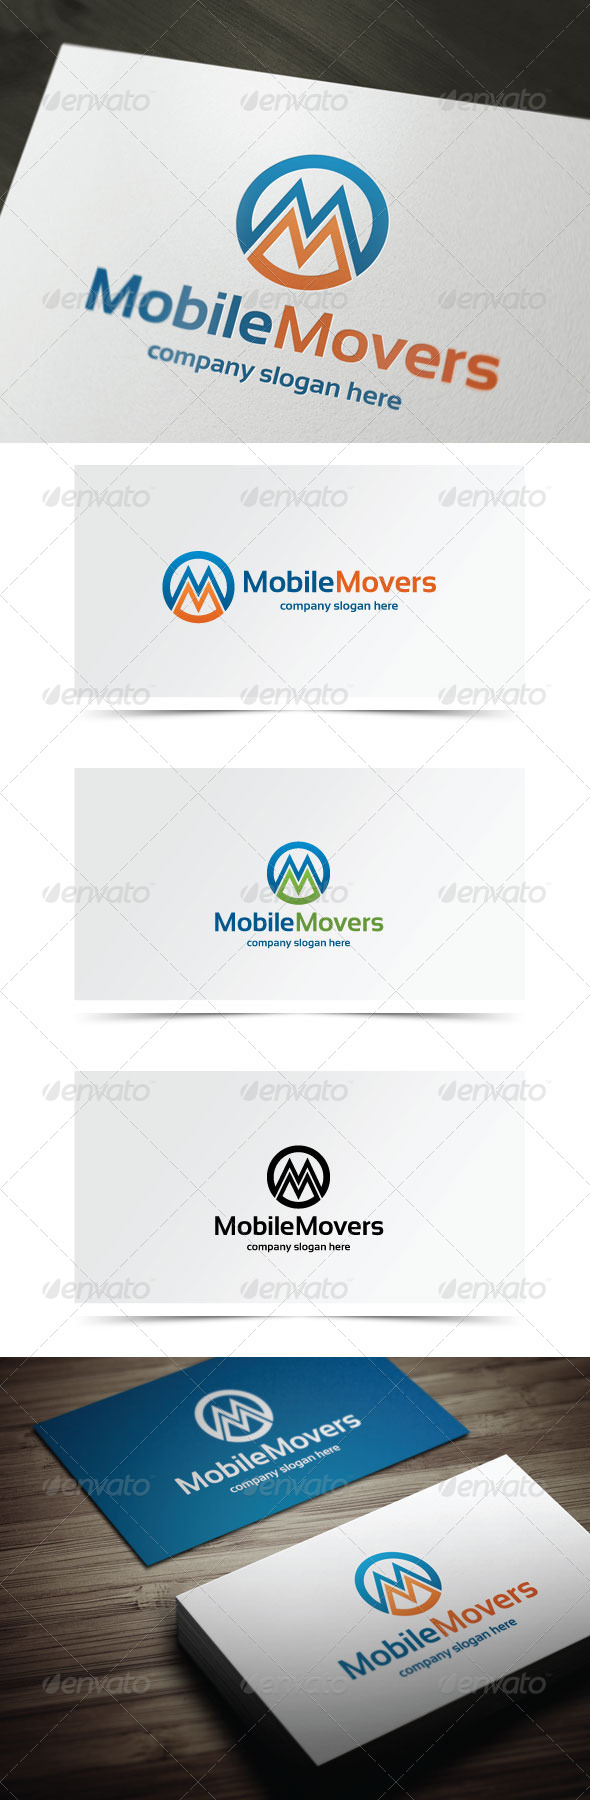 Mobile Movers - Letters Logo Templates